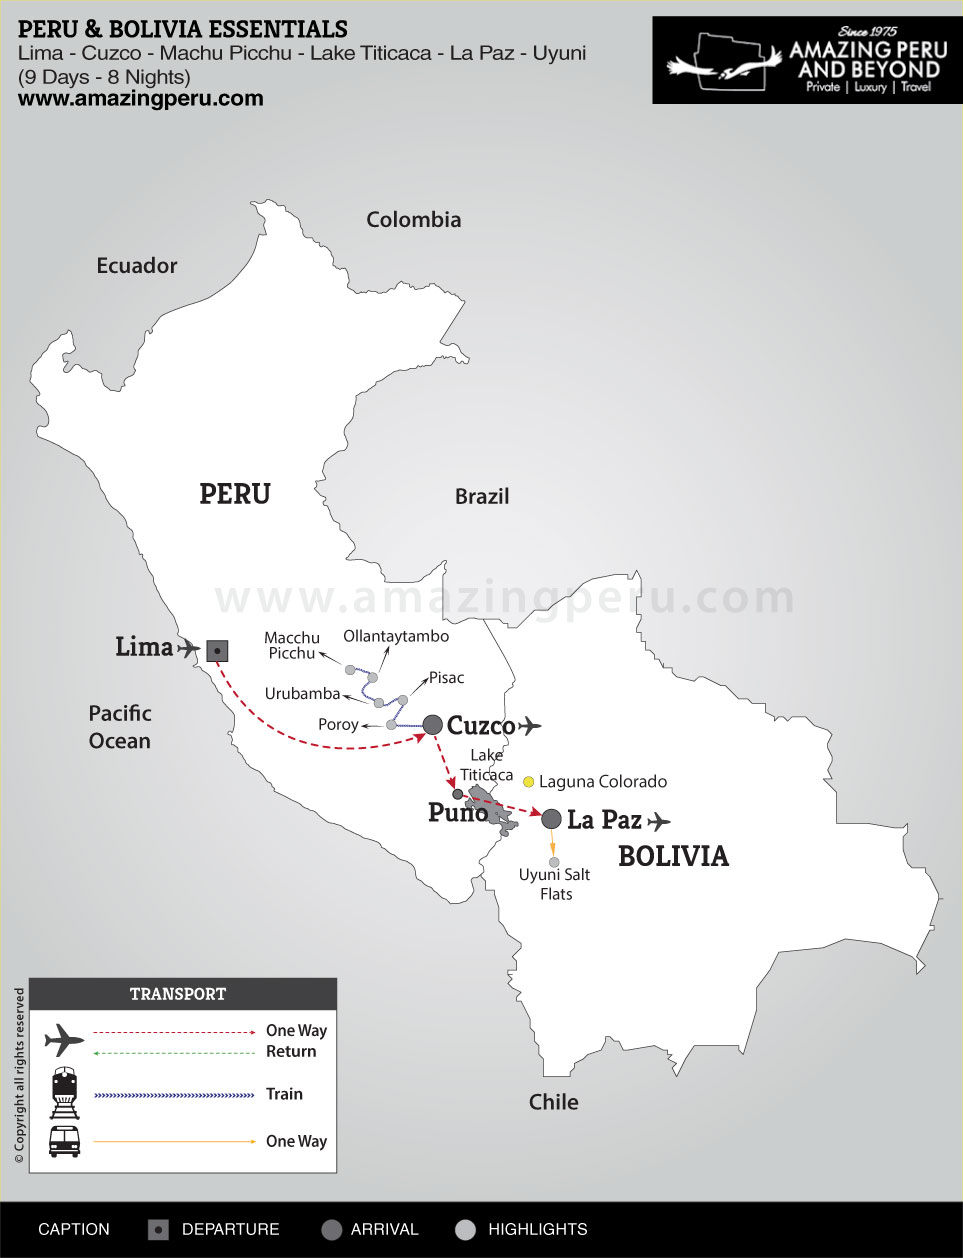 Peru & Bolivia Essentials - 9 days / 8 nights.